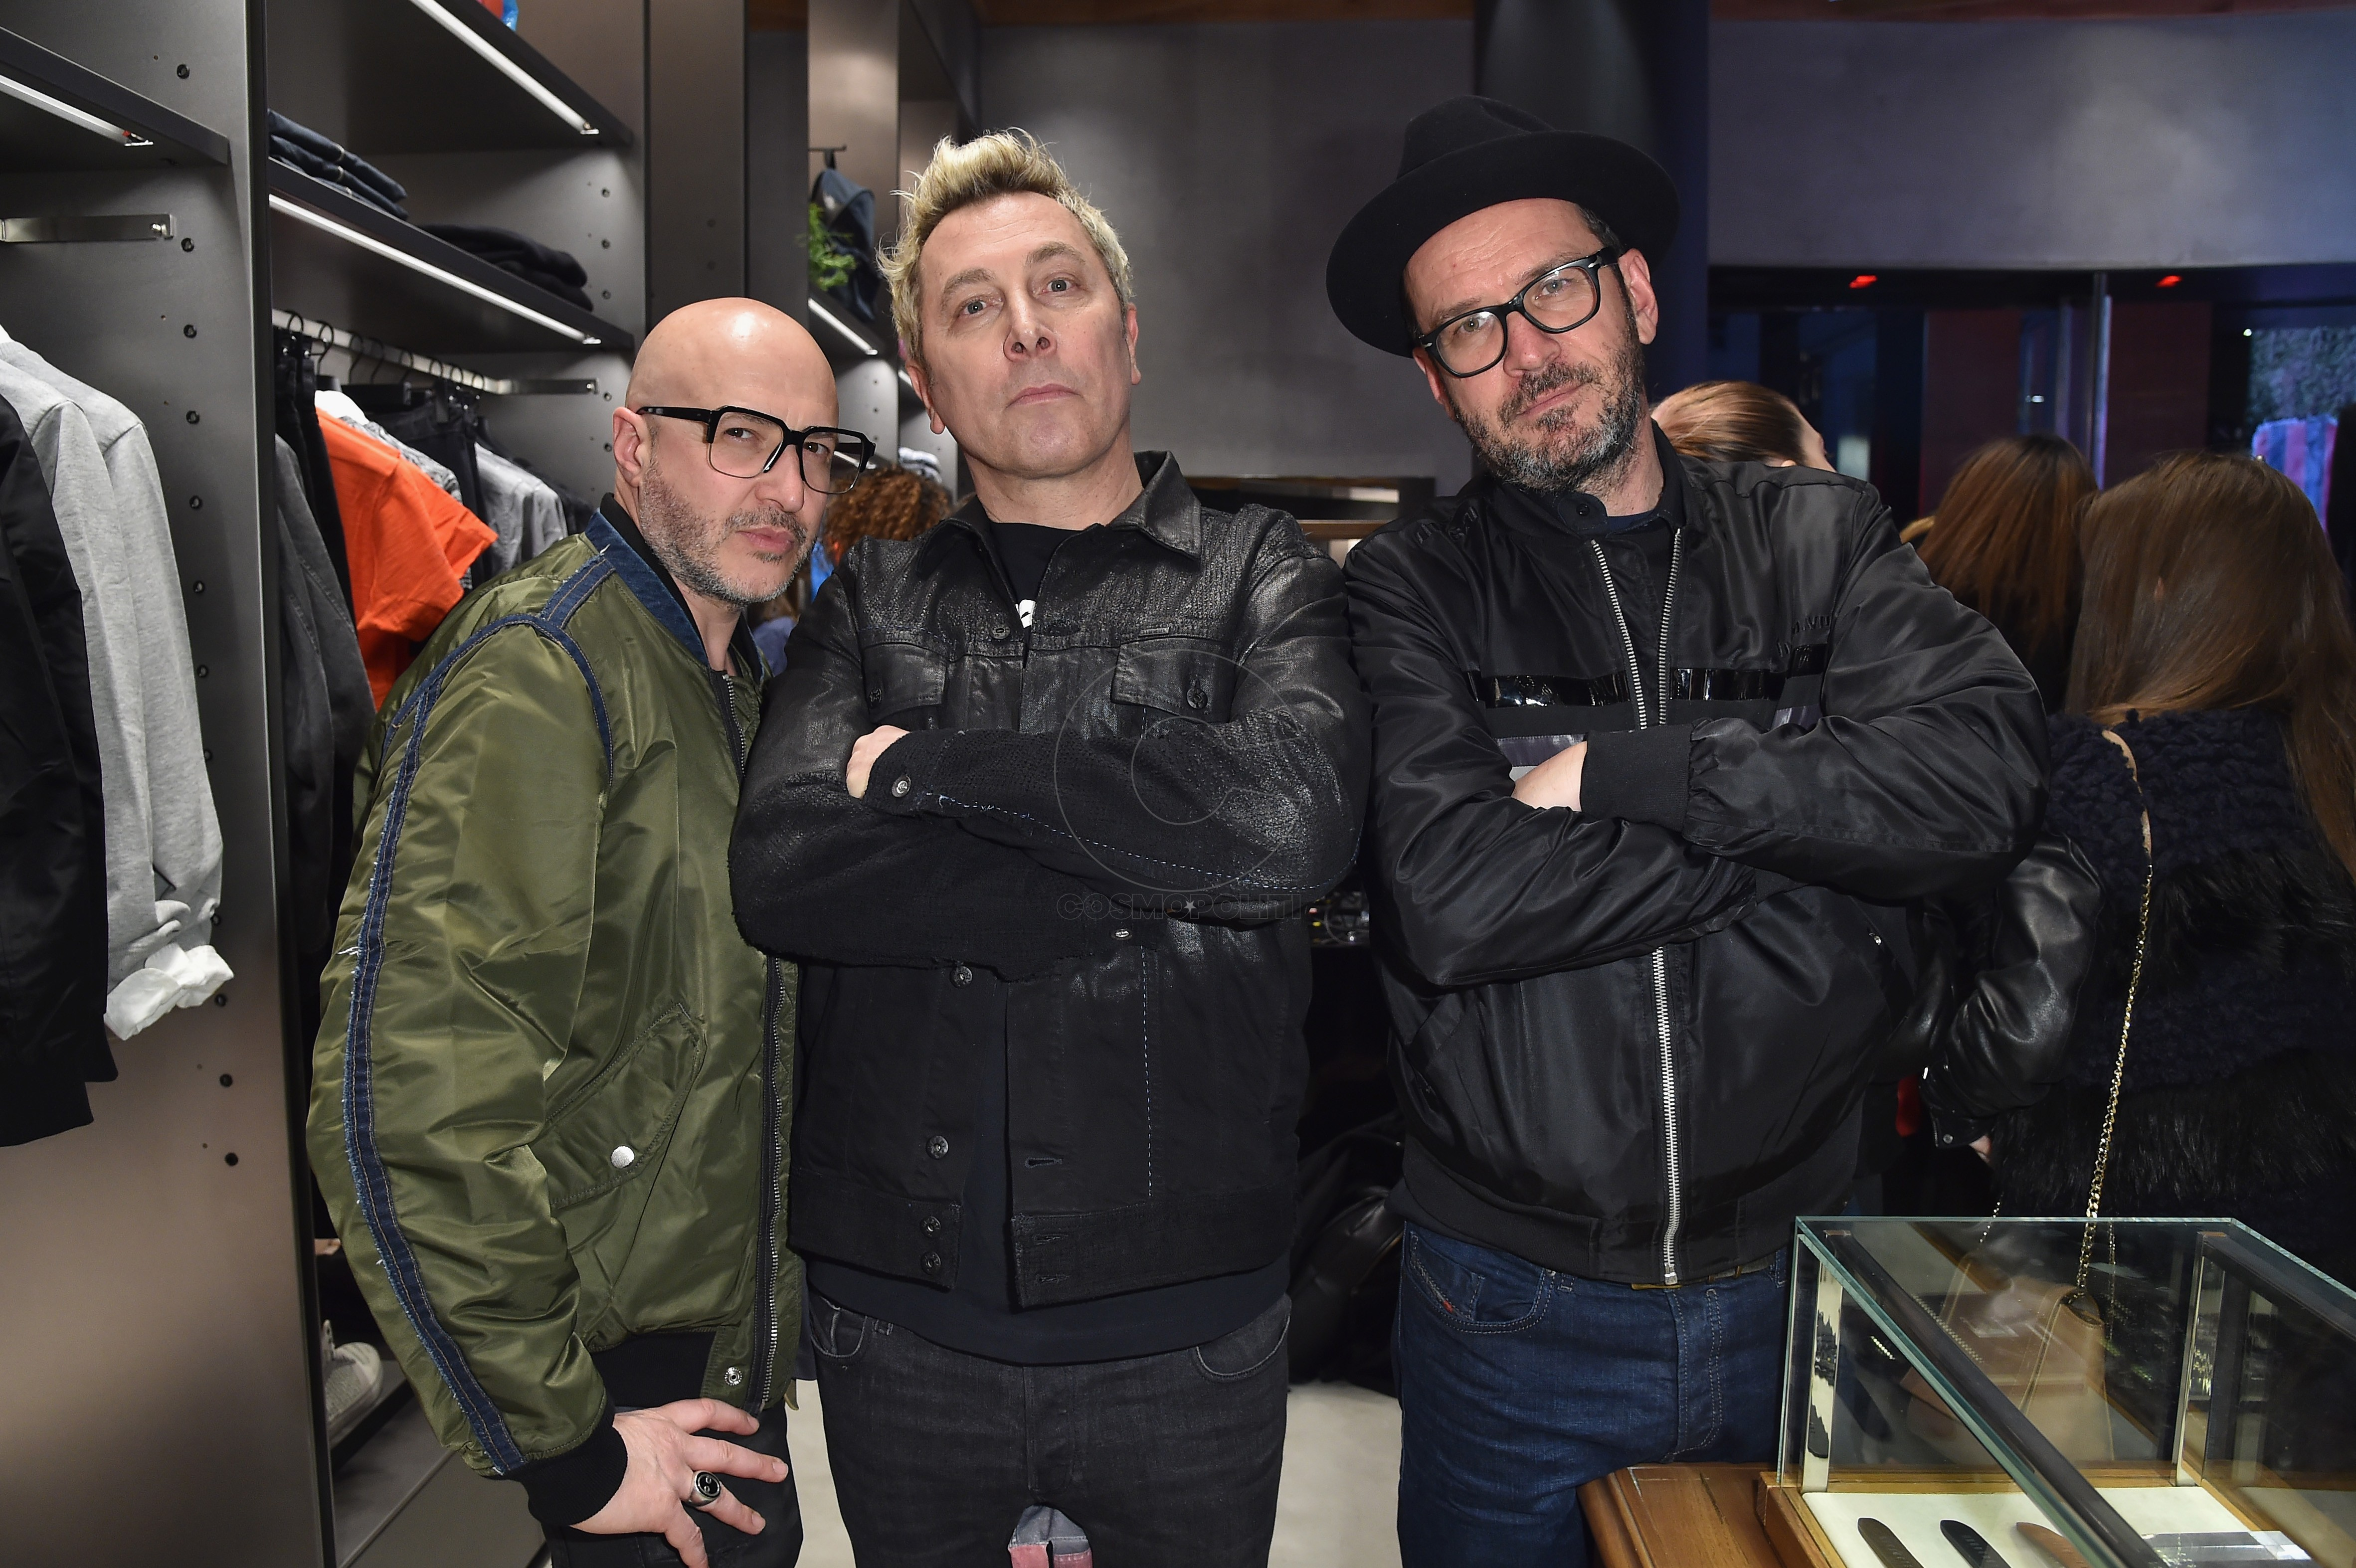 MILAN, ITALY - MARCH 14: Saturnino Celani, Ringo and Settimio Benedusi attend The New Bomber Presentation at the Diesel Store on March 14, 2017 in Milan, Italy. (Photo by Jacopo Raule/Getty Images for Diesel)